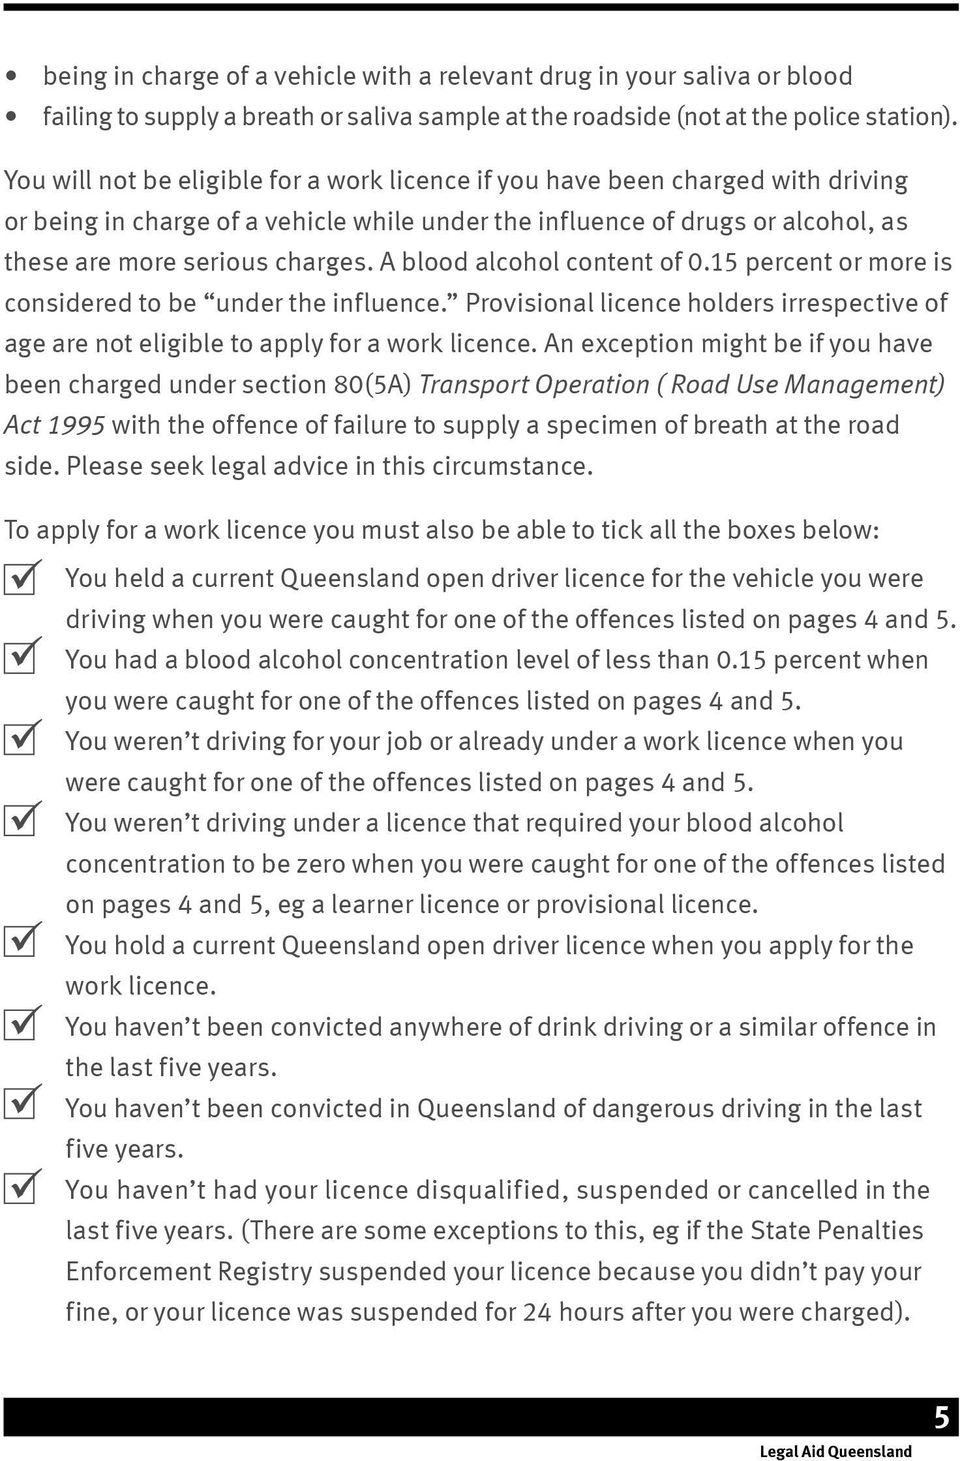 A blood alcohol content of 0.15 percent or more is considered to be under the influence. Provisional licence holders irrespective of age are not eligible to apply for a work licence.